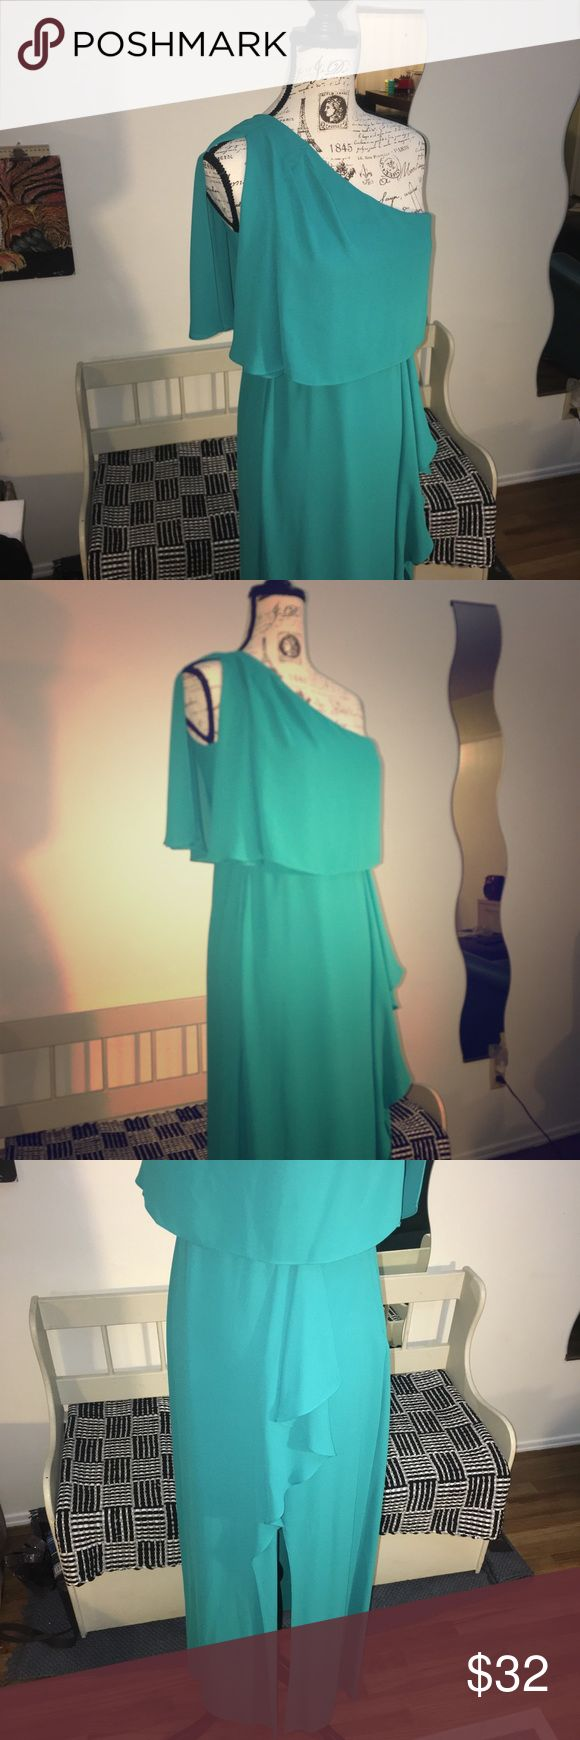 Turquoise one shoulder long Dress Elegant one shoulder dress, is long and it has a long opening On the left leg for a chic look, is flare loose in bust area Dresses One Shoulder